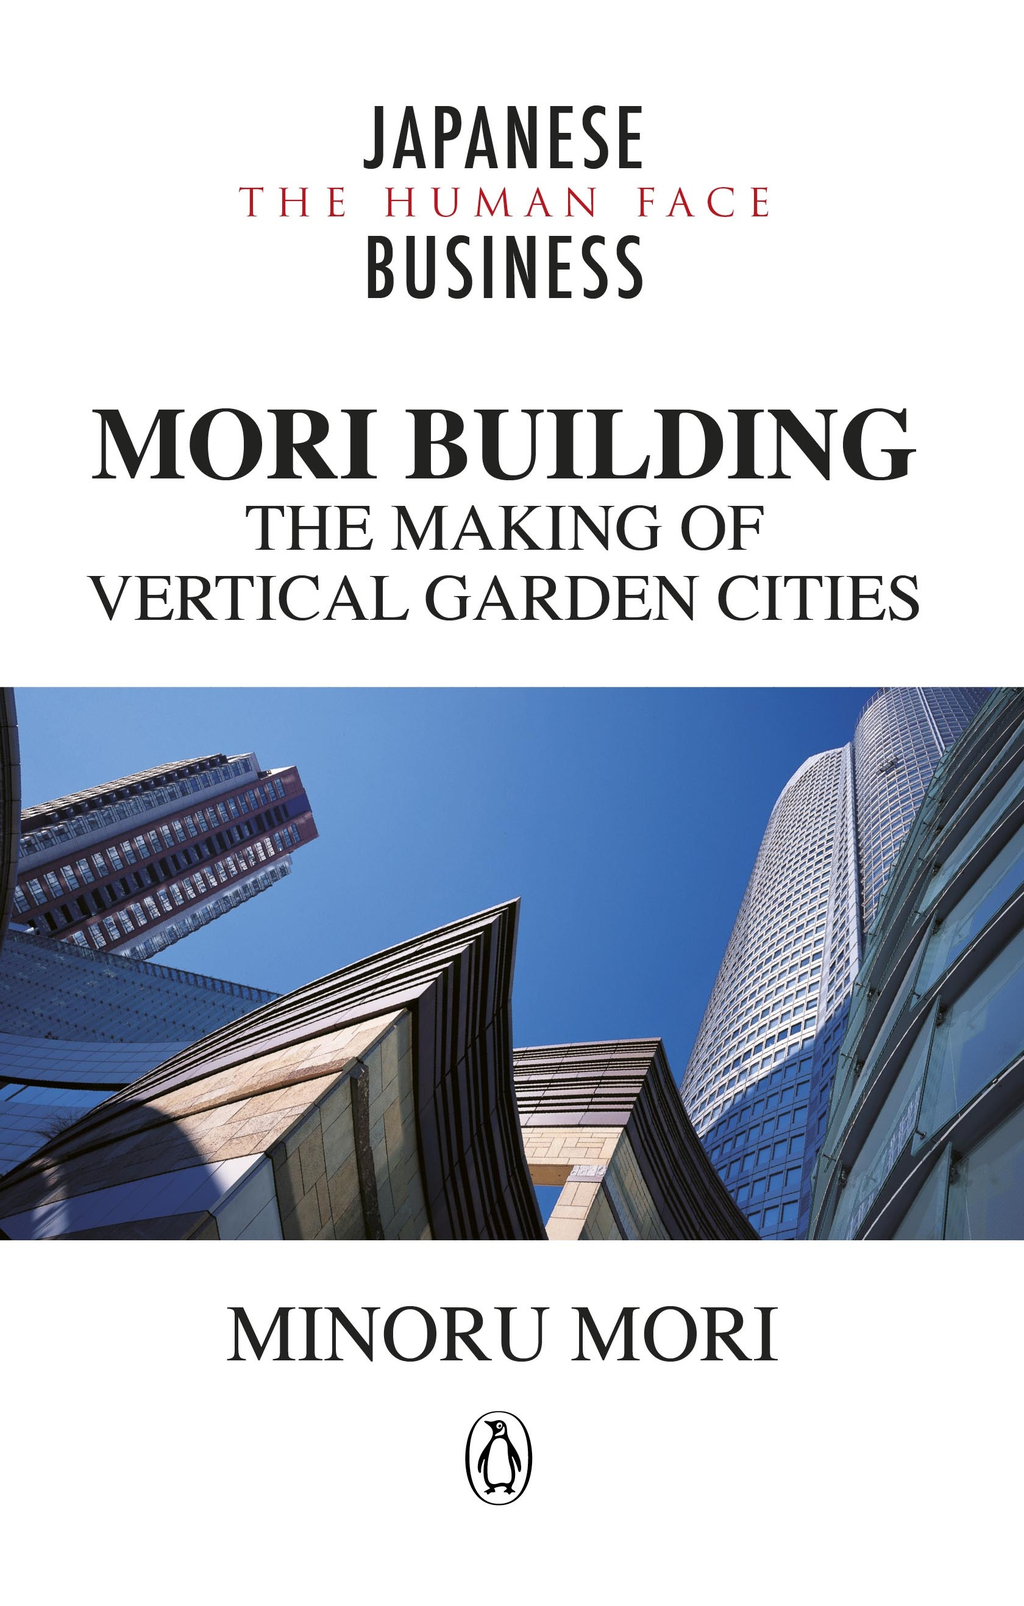 MORI Building The Making of Vertical Garden Cities